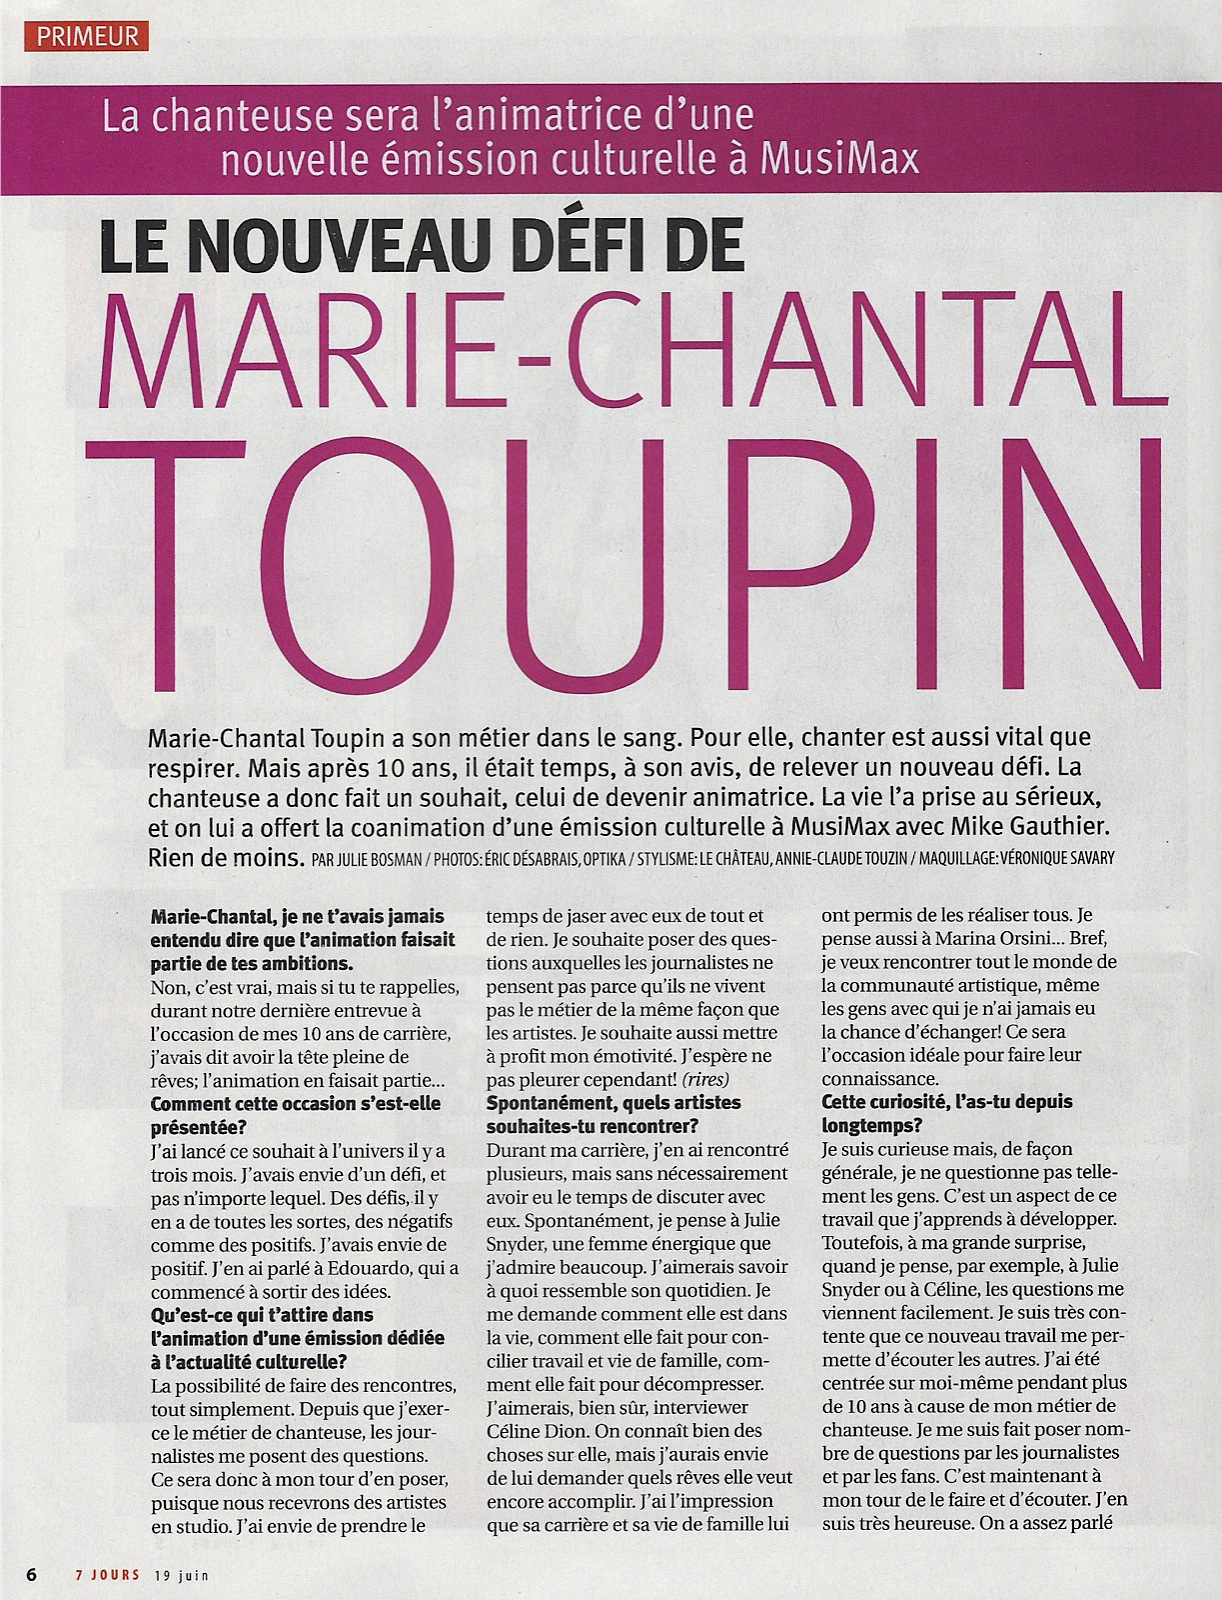 Marie-Chantal Toupin 7 Jours